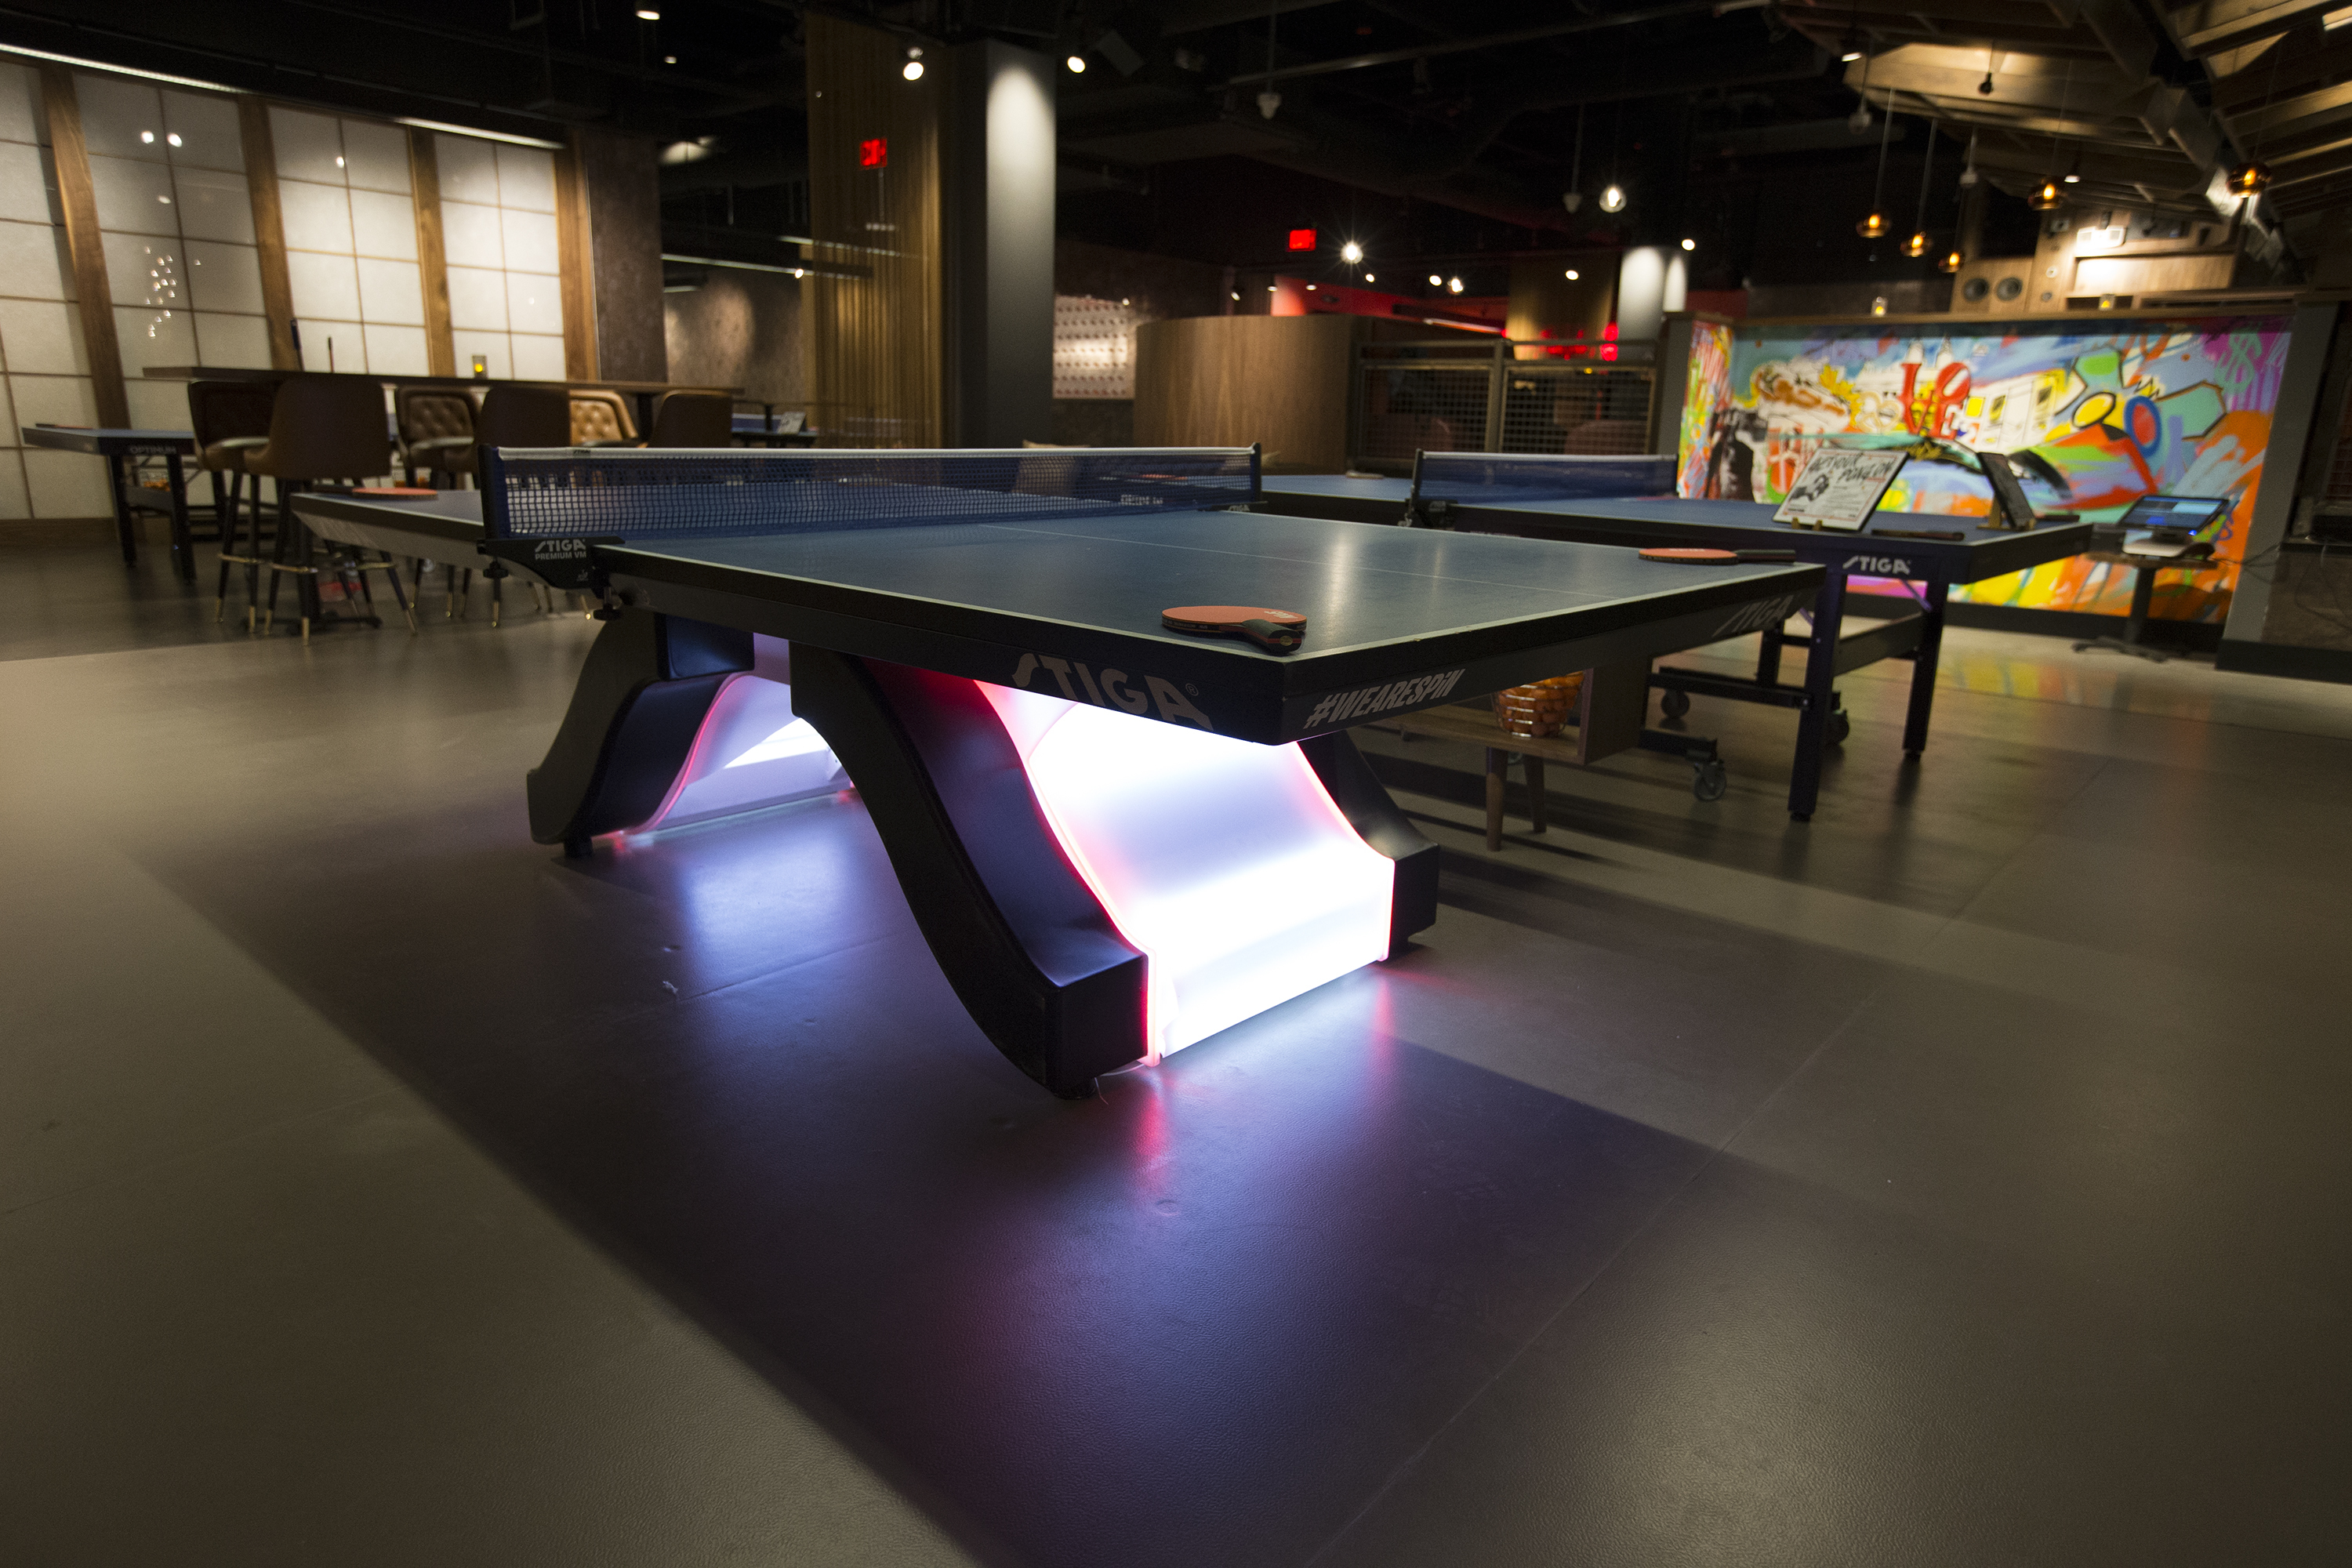 Old school Ping-Pong meets new school facilities in Center City in the form of SPiN, a place to drink, socialize, and play games. Some the tables on Sept. 5, 2017. CHARLES FOX / Staff Photographer